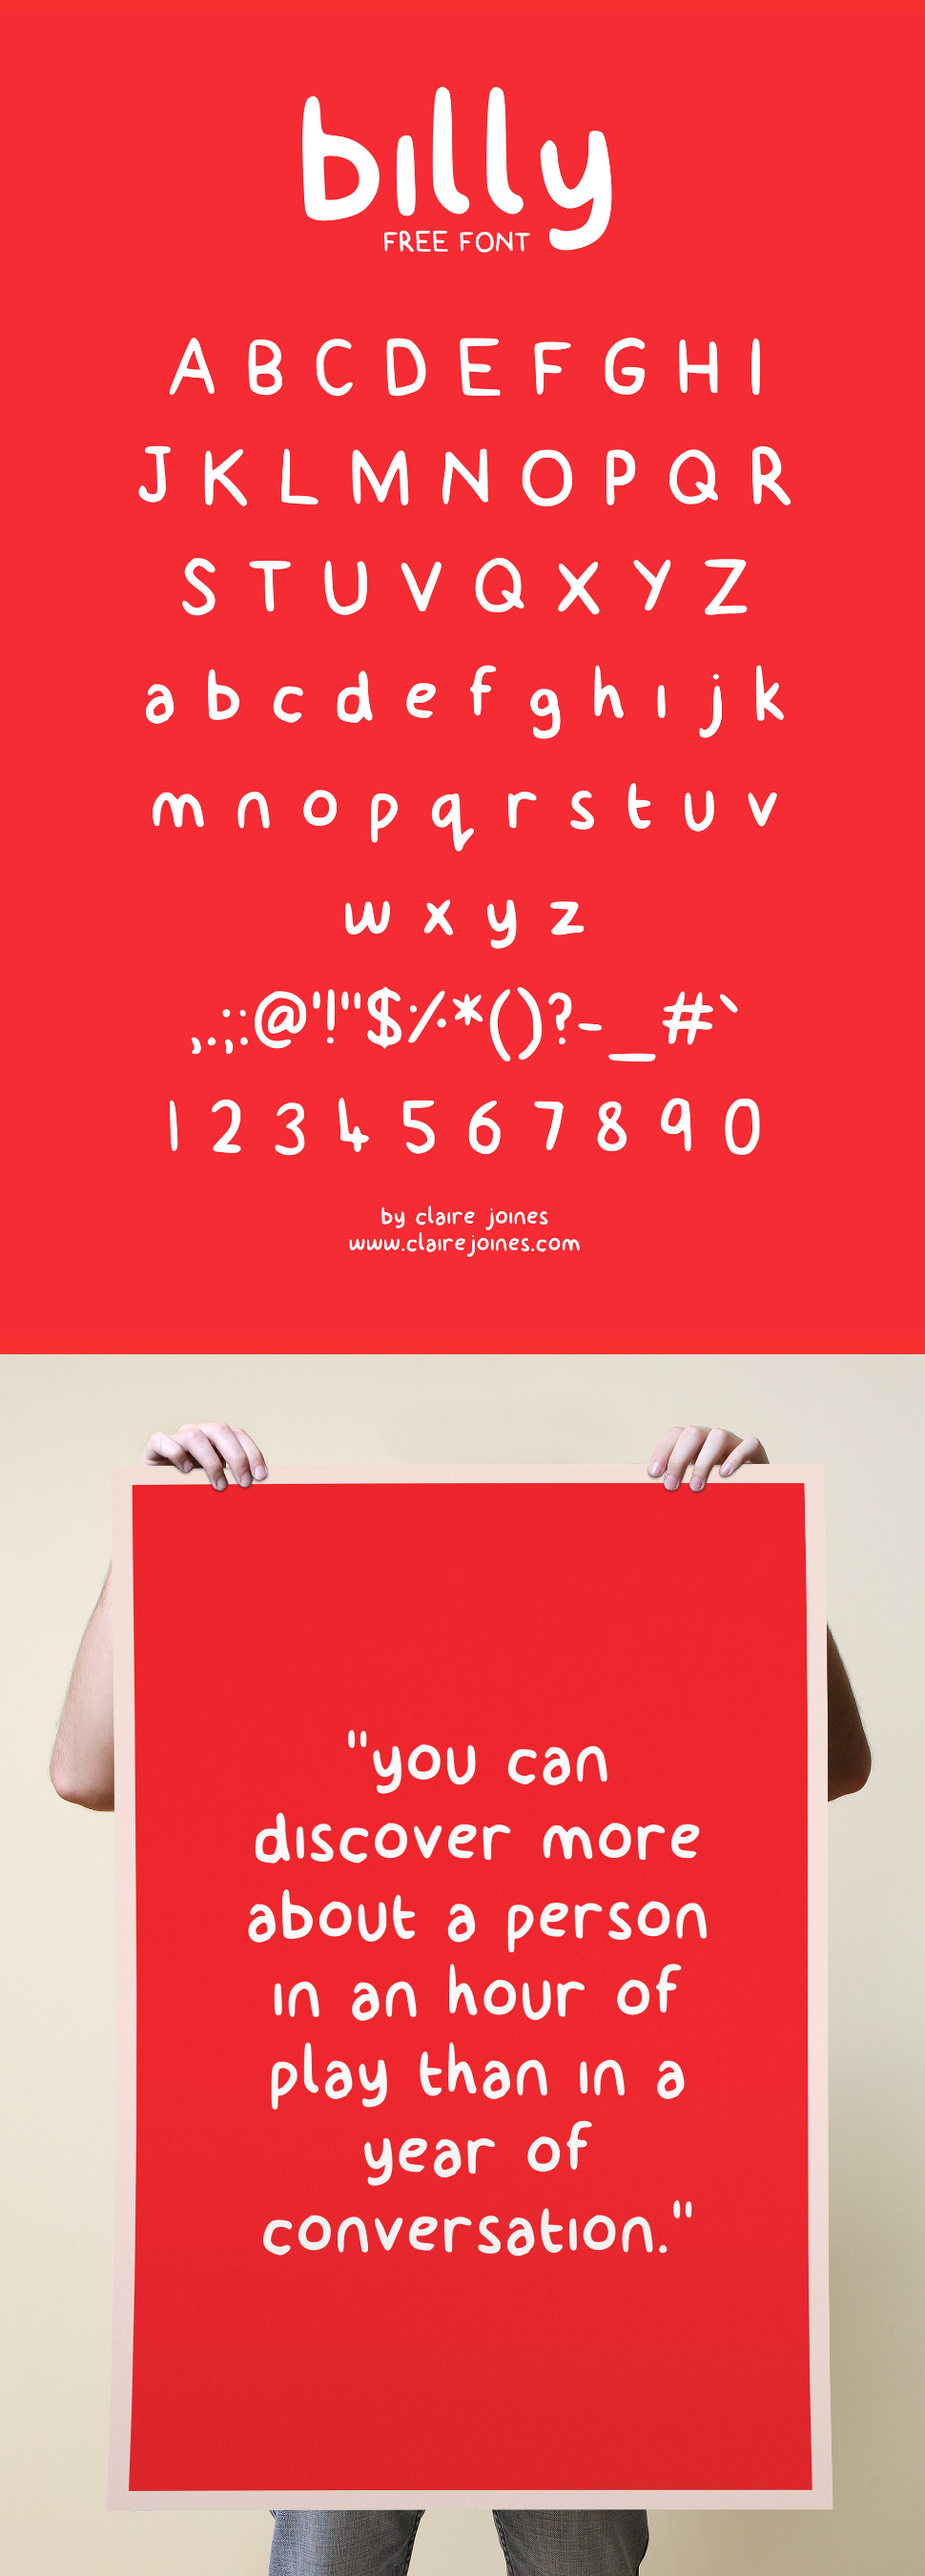 billy free font